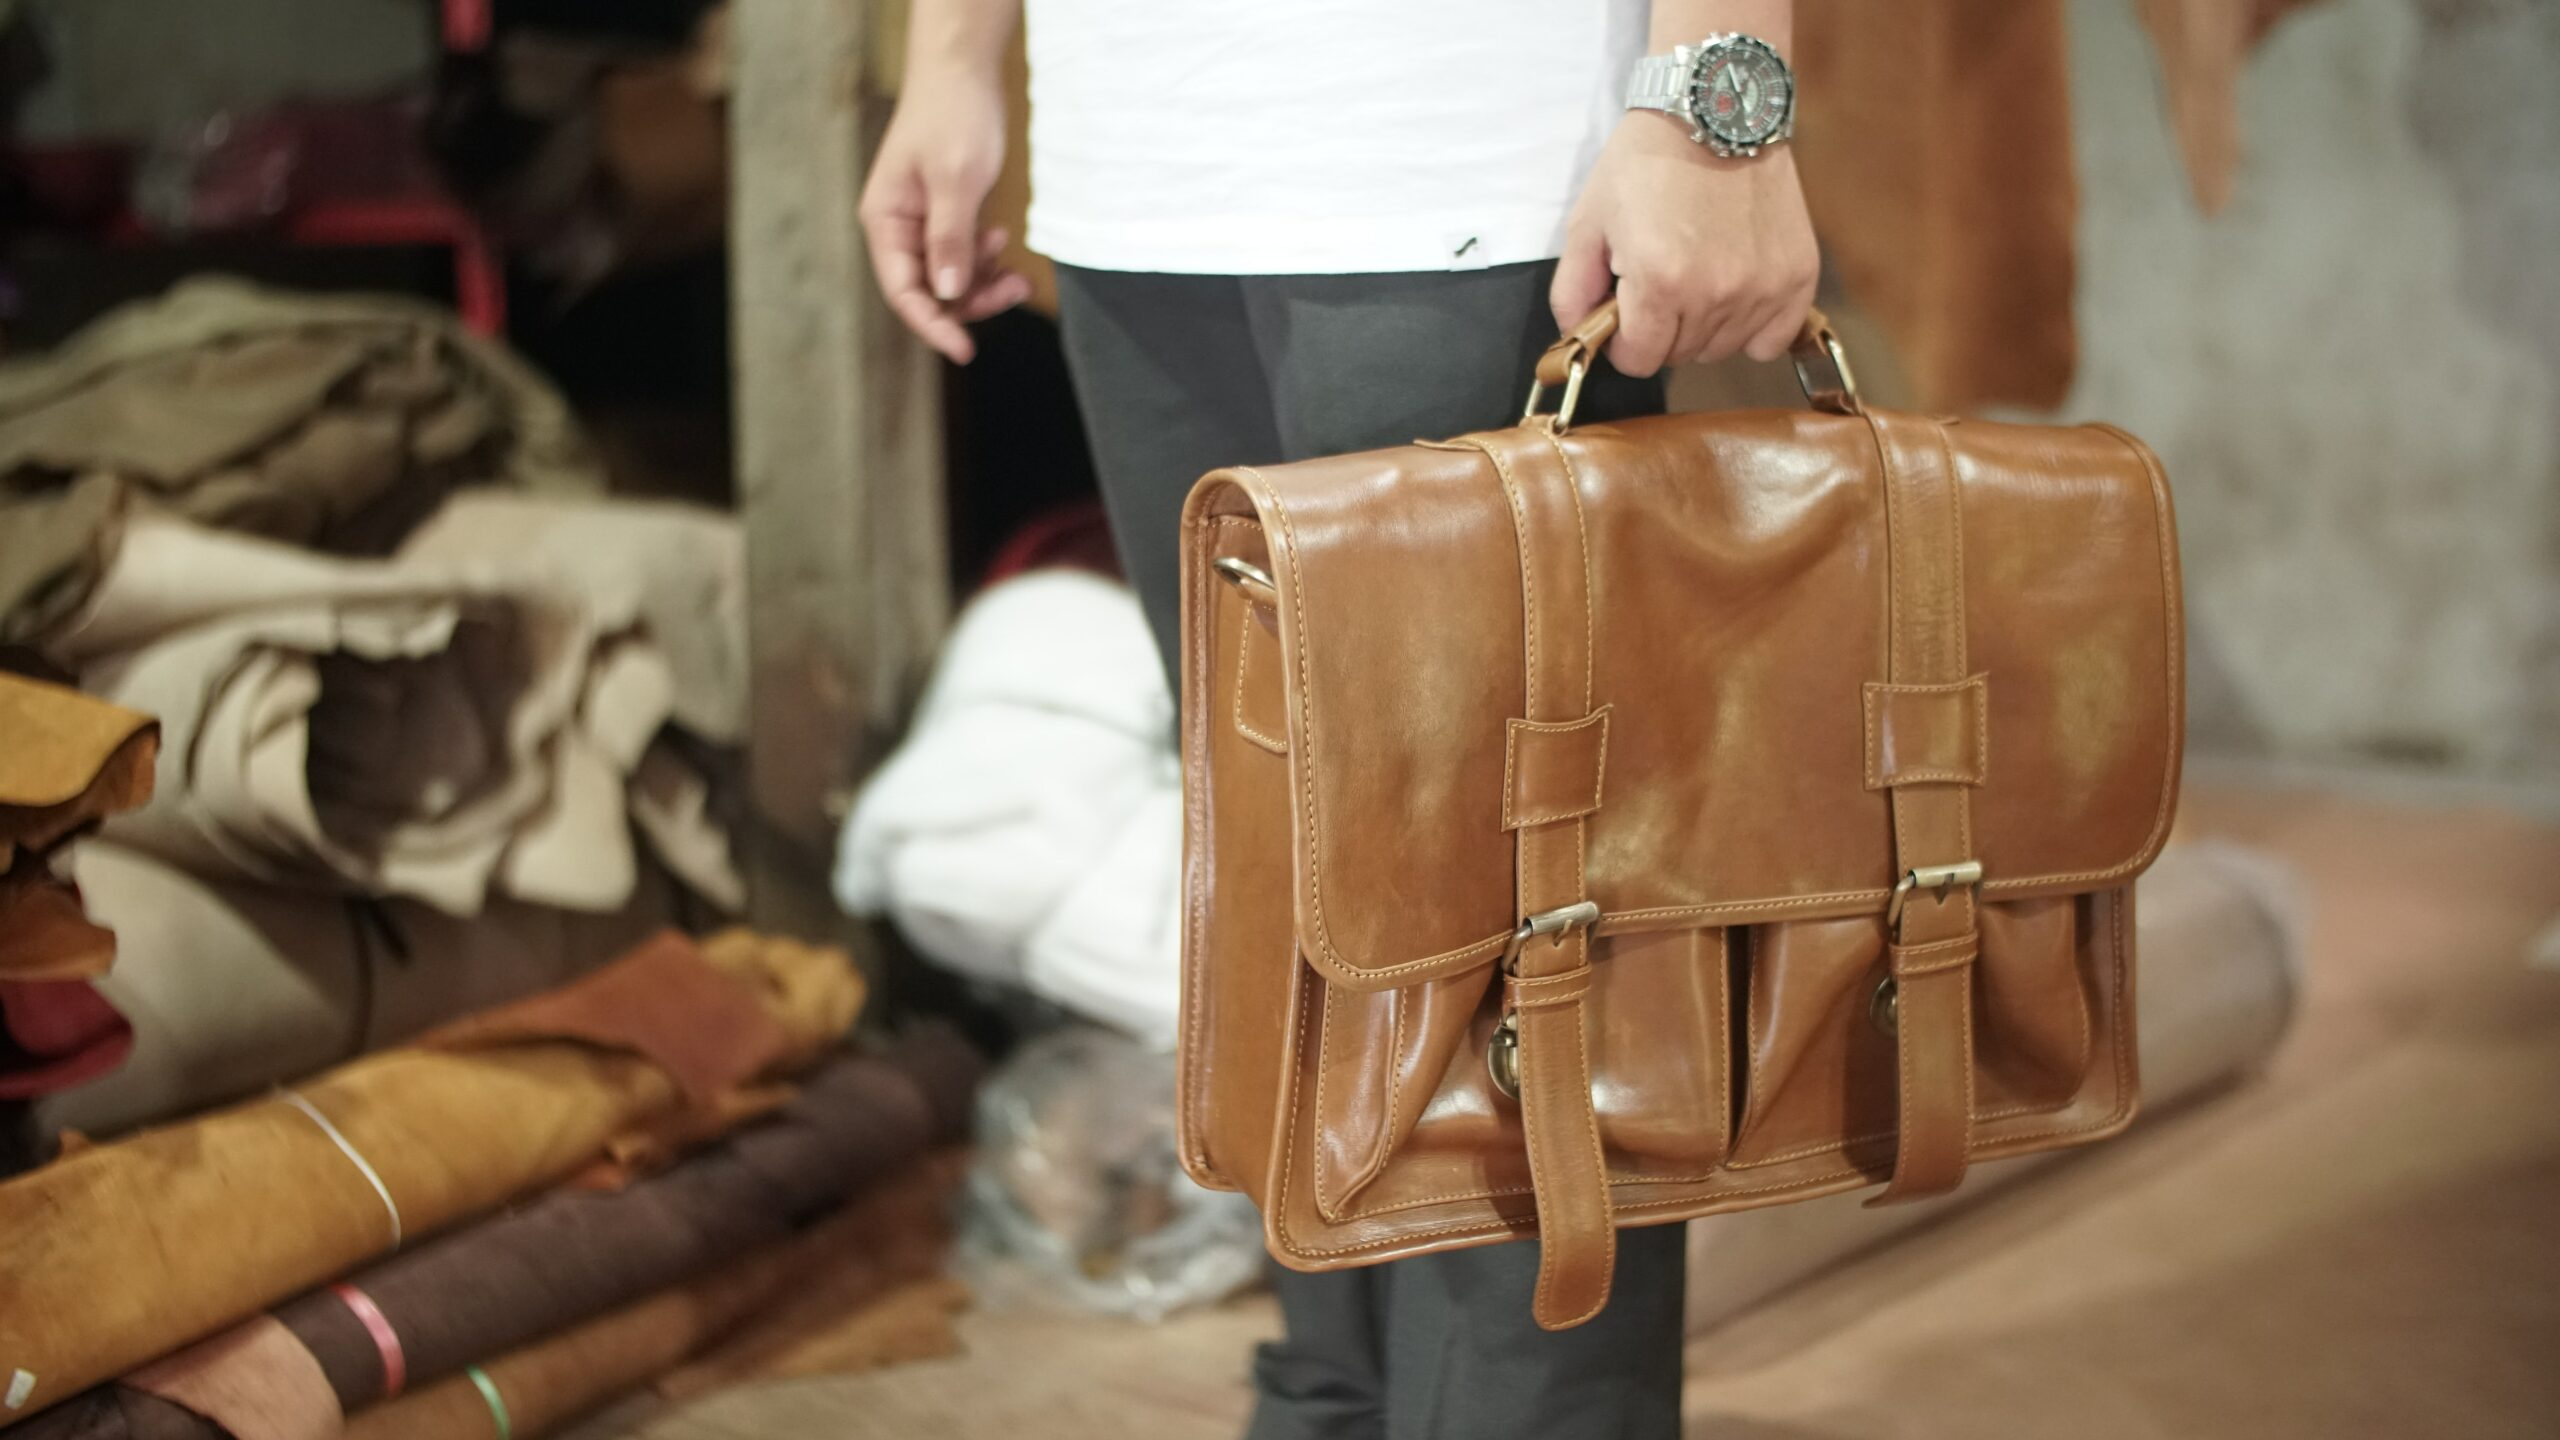 holding a leather bag great for teachers